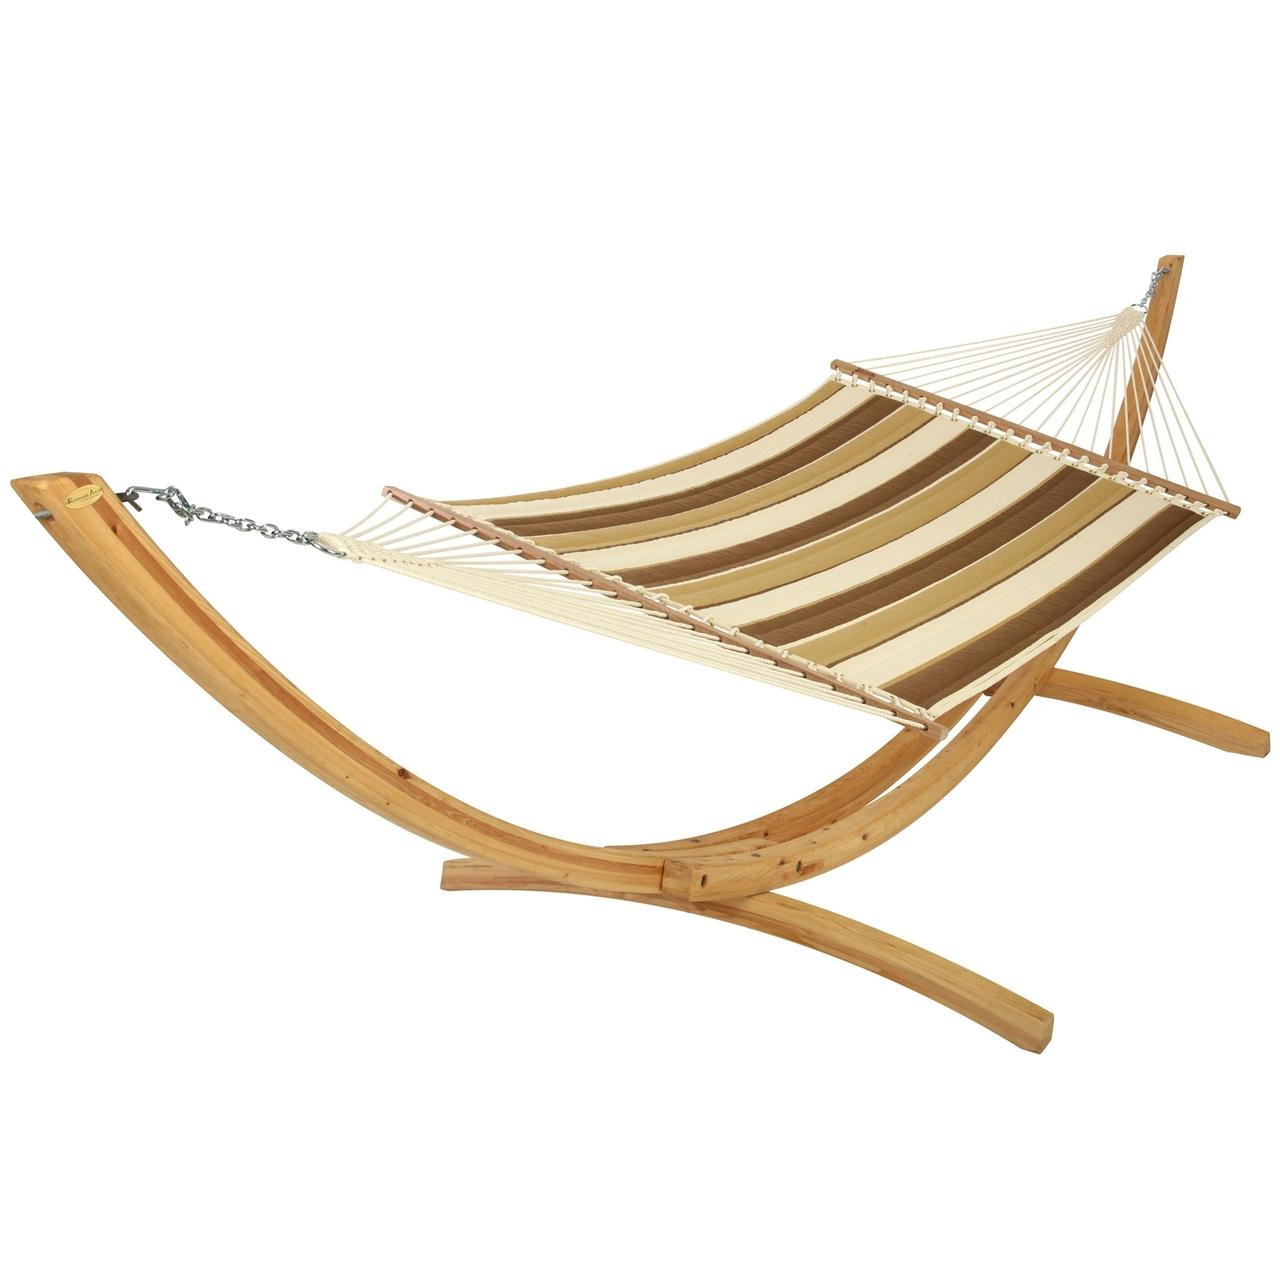 quilted hammock striped pattern